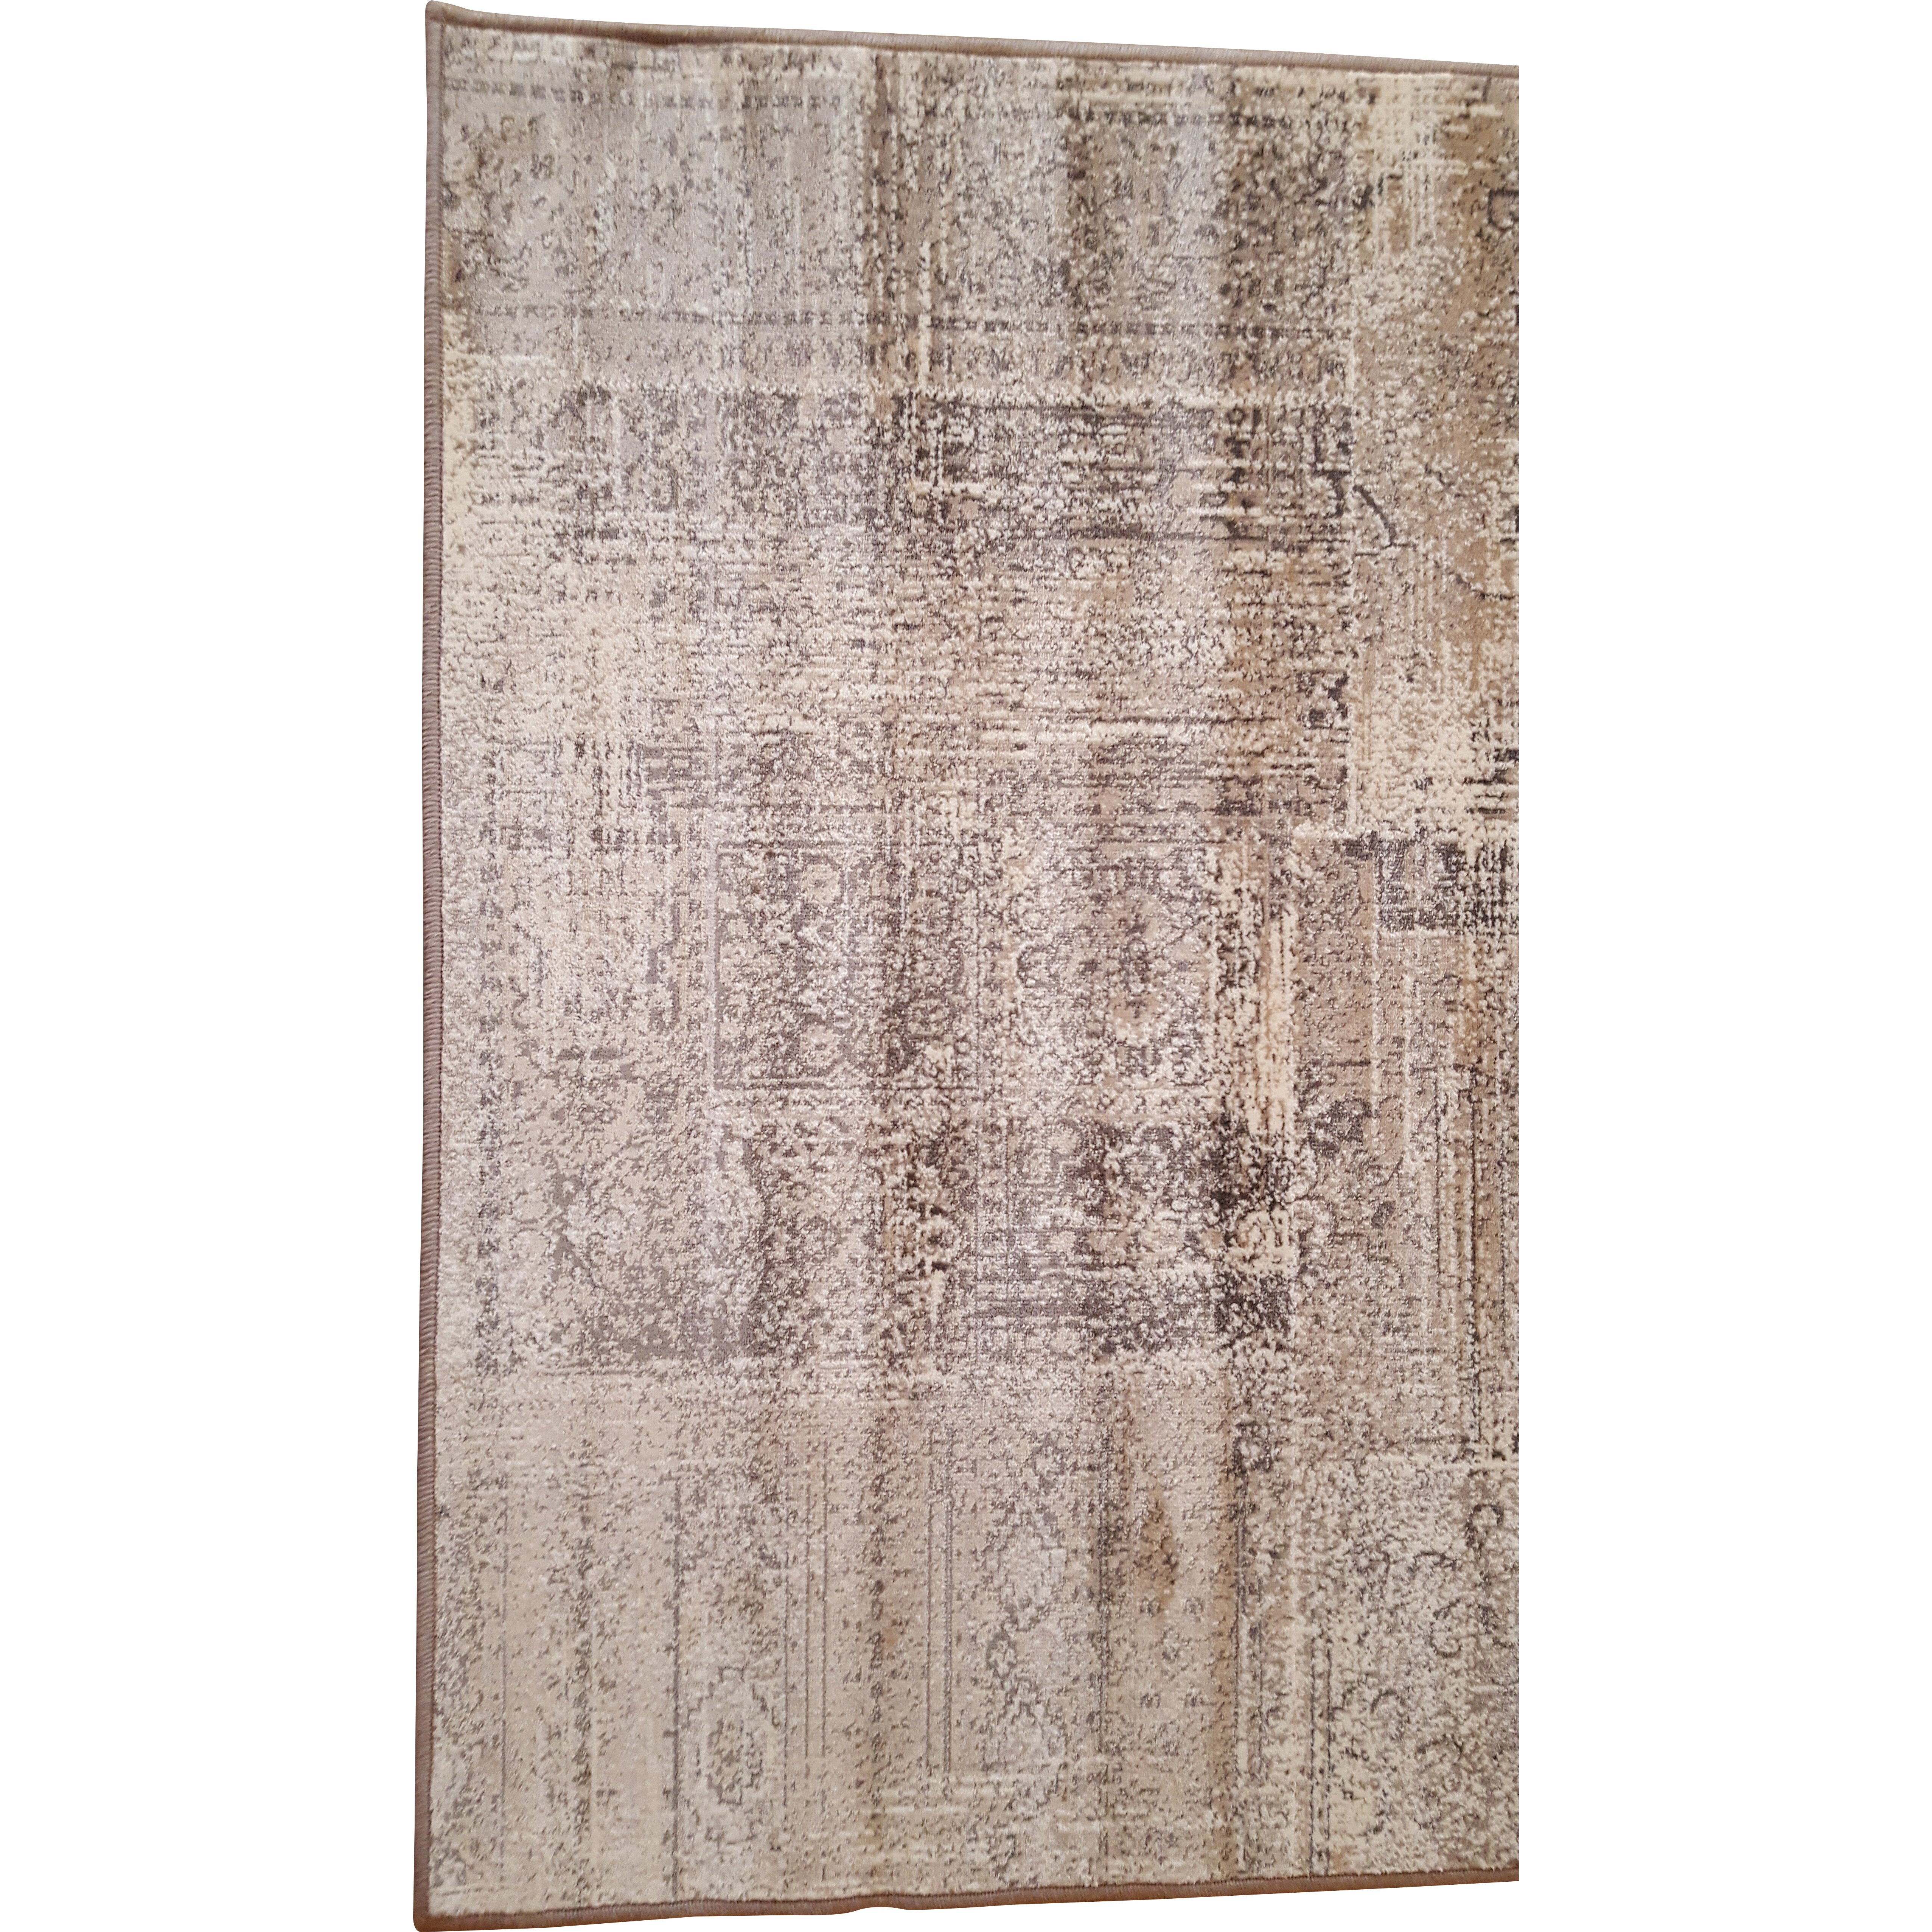 Barefoot artsilk rugs patchwork warm beige area rug for Warm rugs